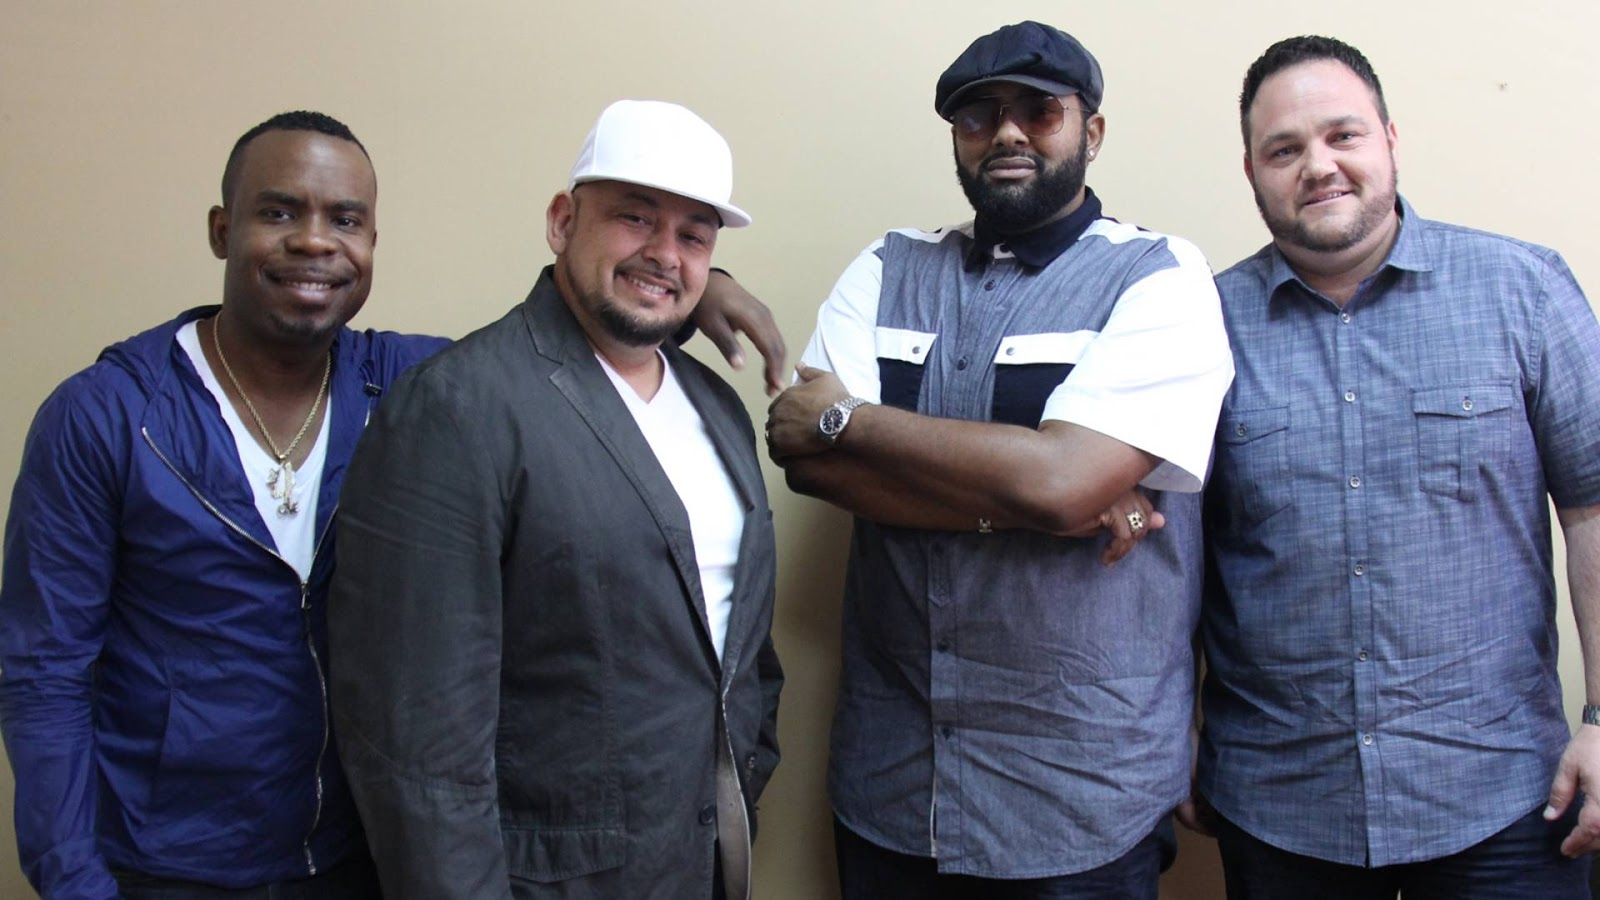 All-4-One to perform in Kota Kinabalu after Retrofest